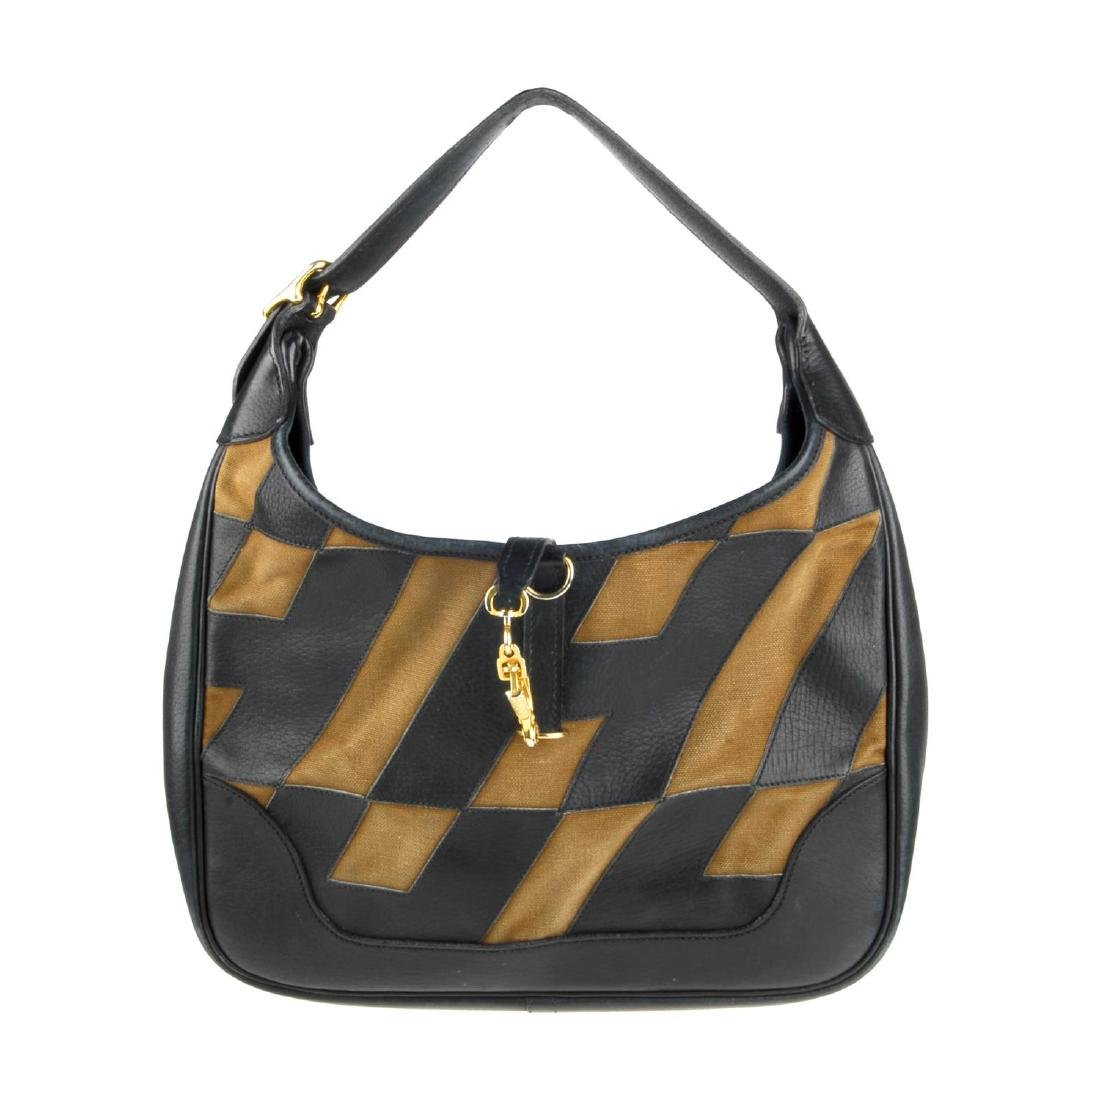 HERMÈS - a Trim handbag. Crafted from brown canvas and